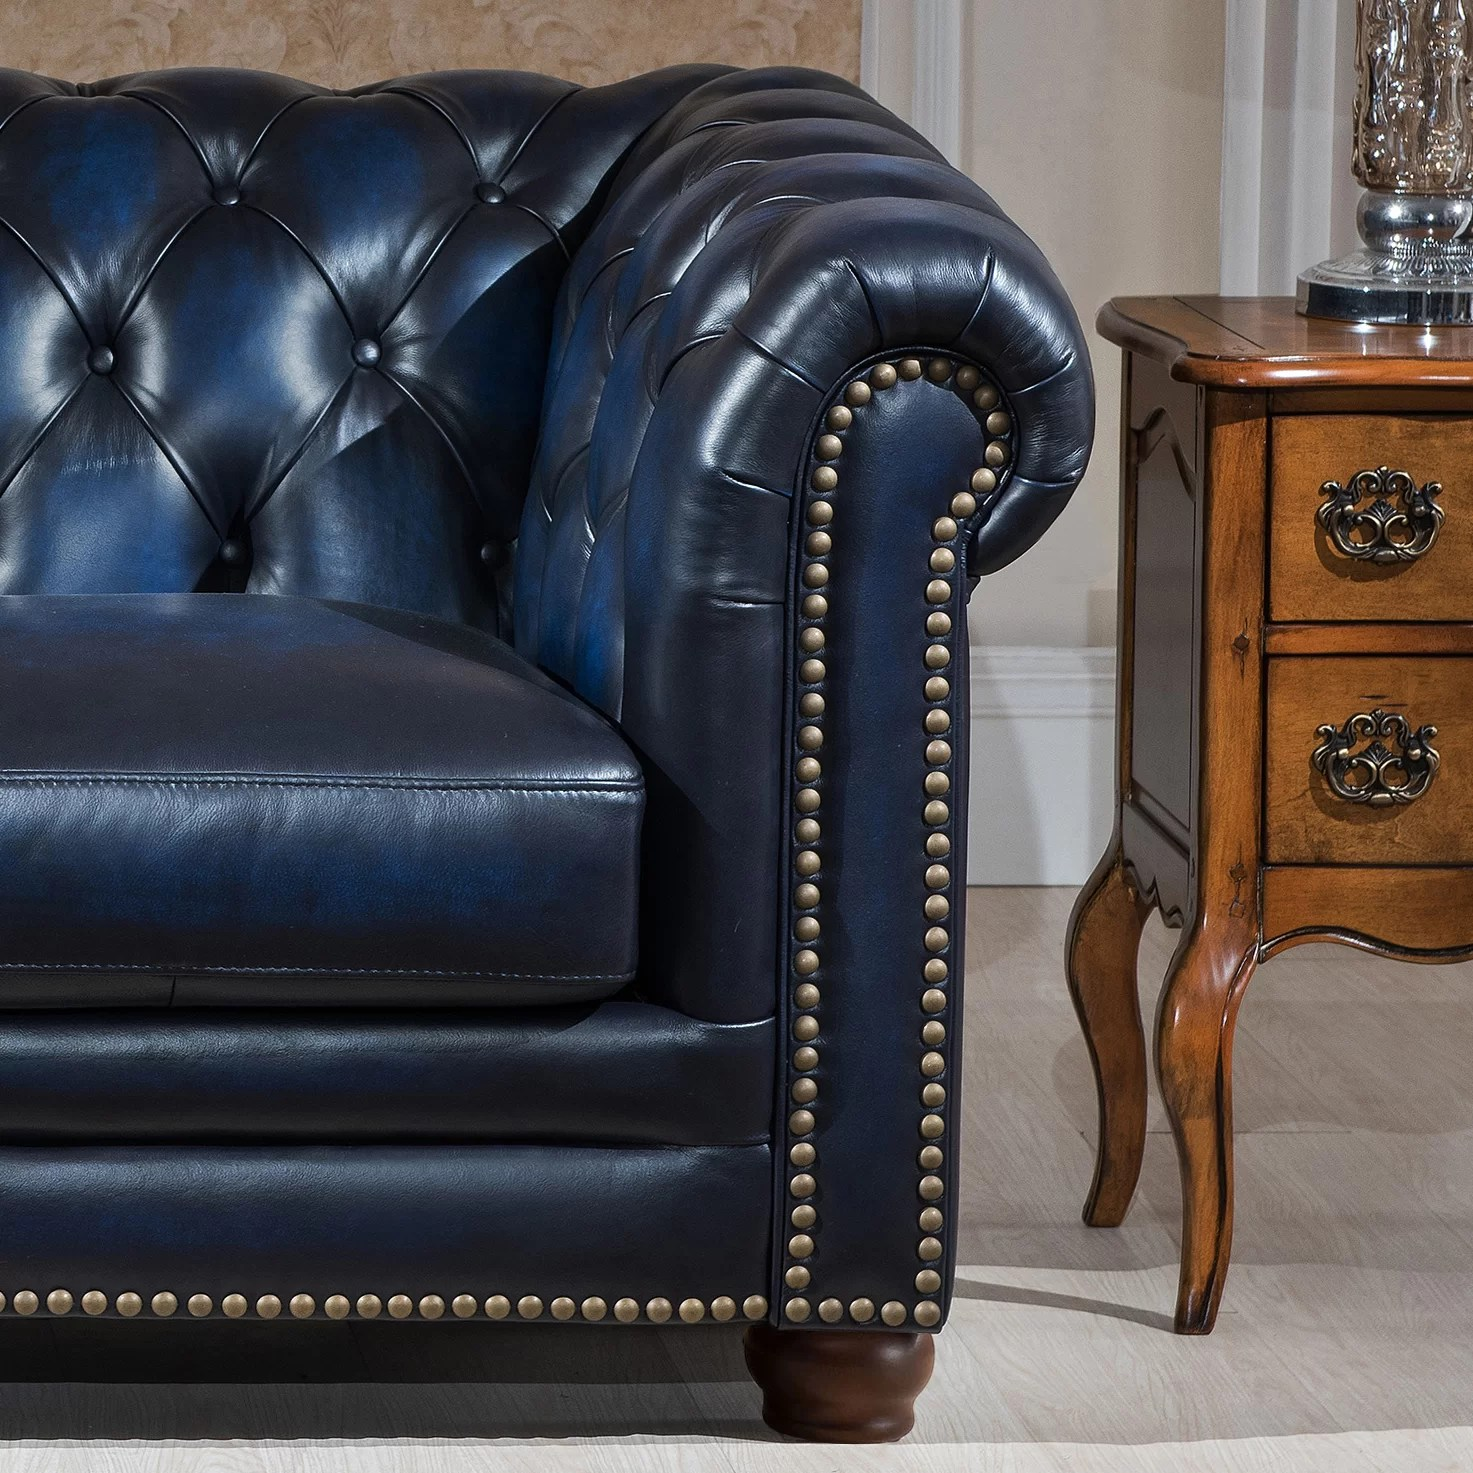 genuine leather chair bar height table and chairs walmart amax nebraska chesterfield sofa loveseat